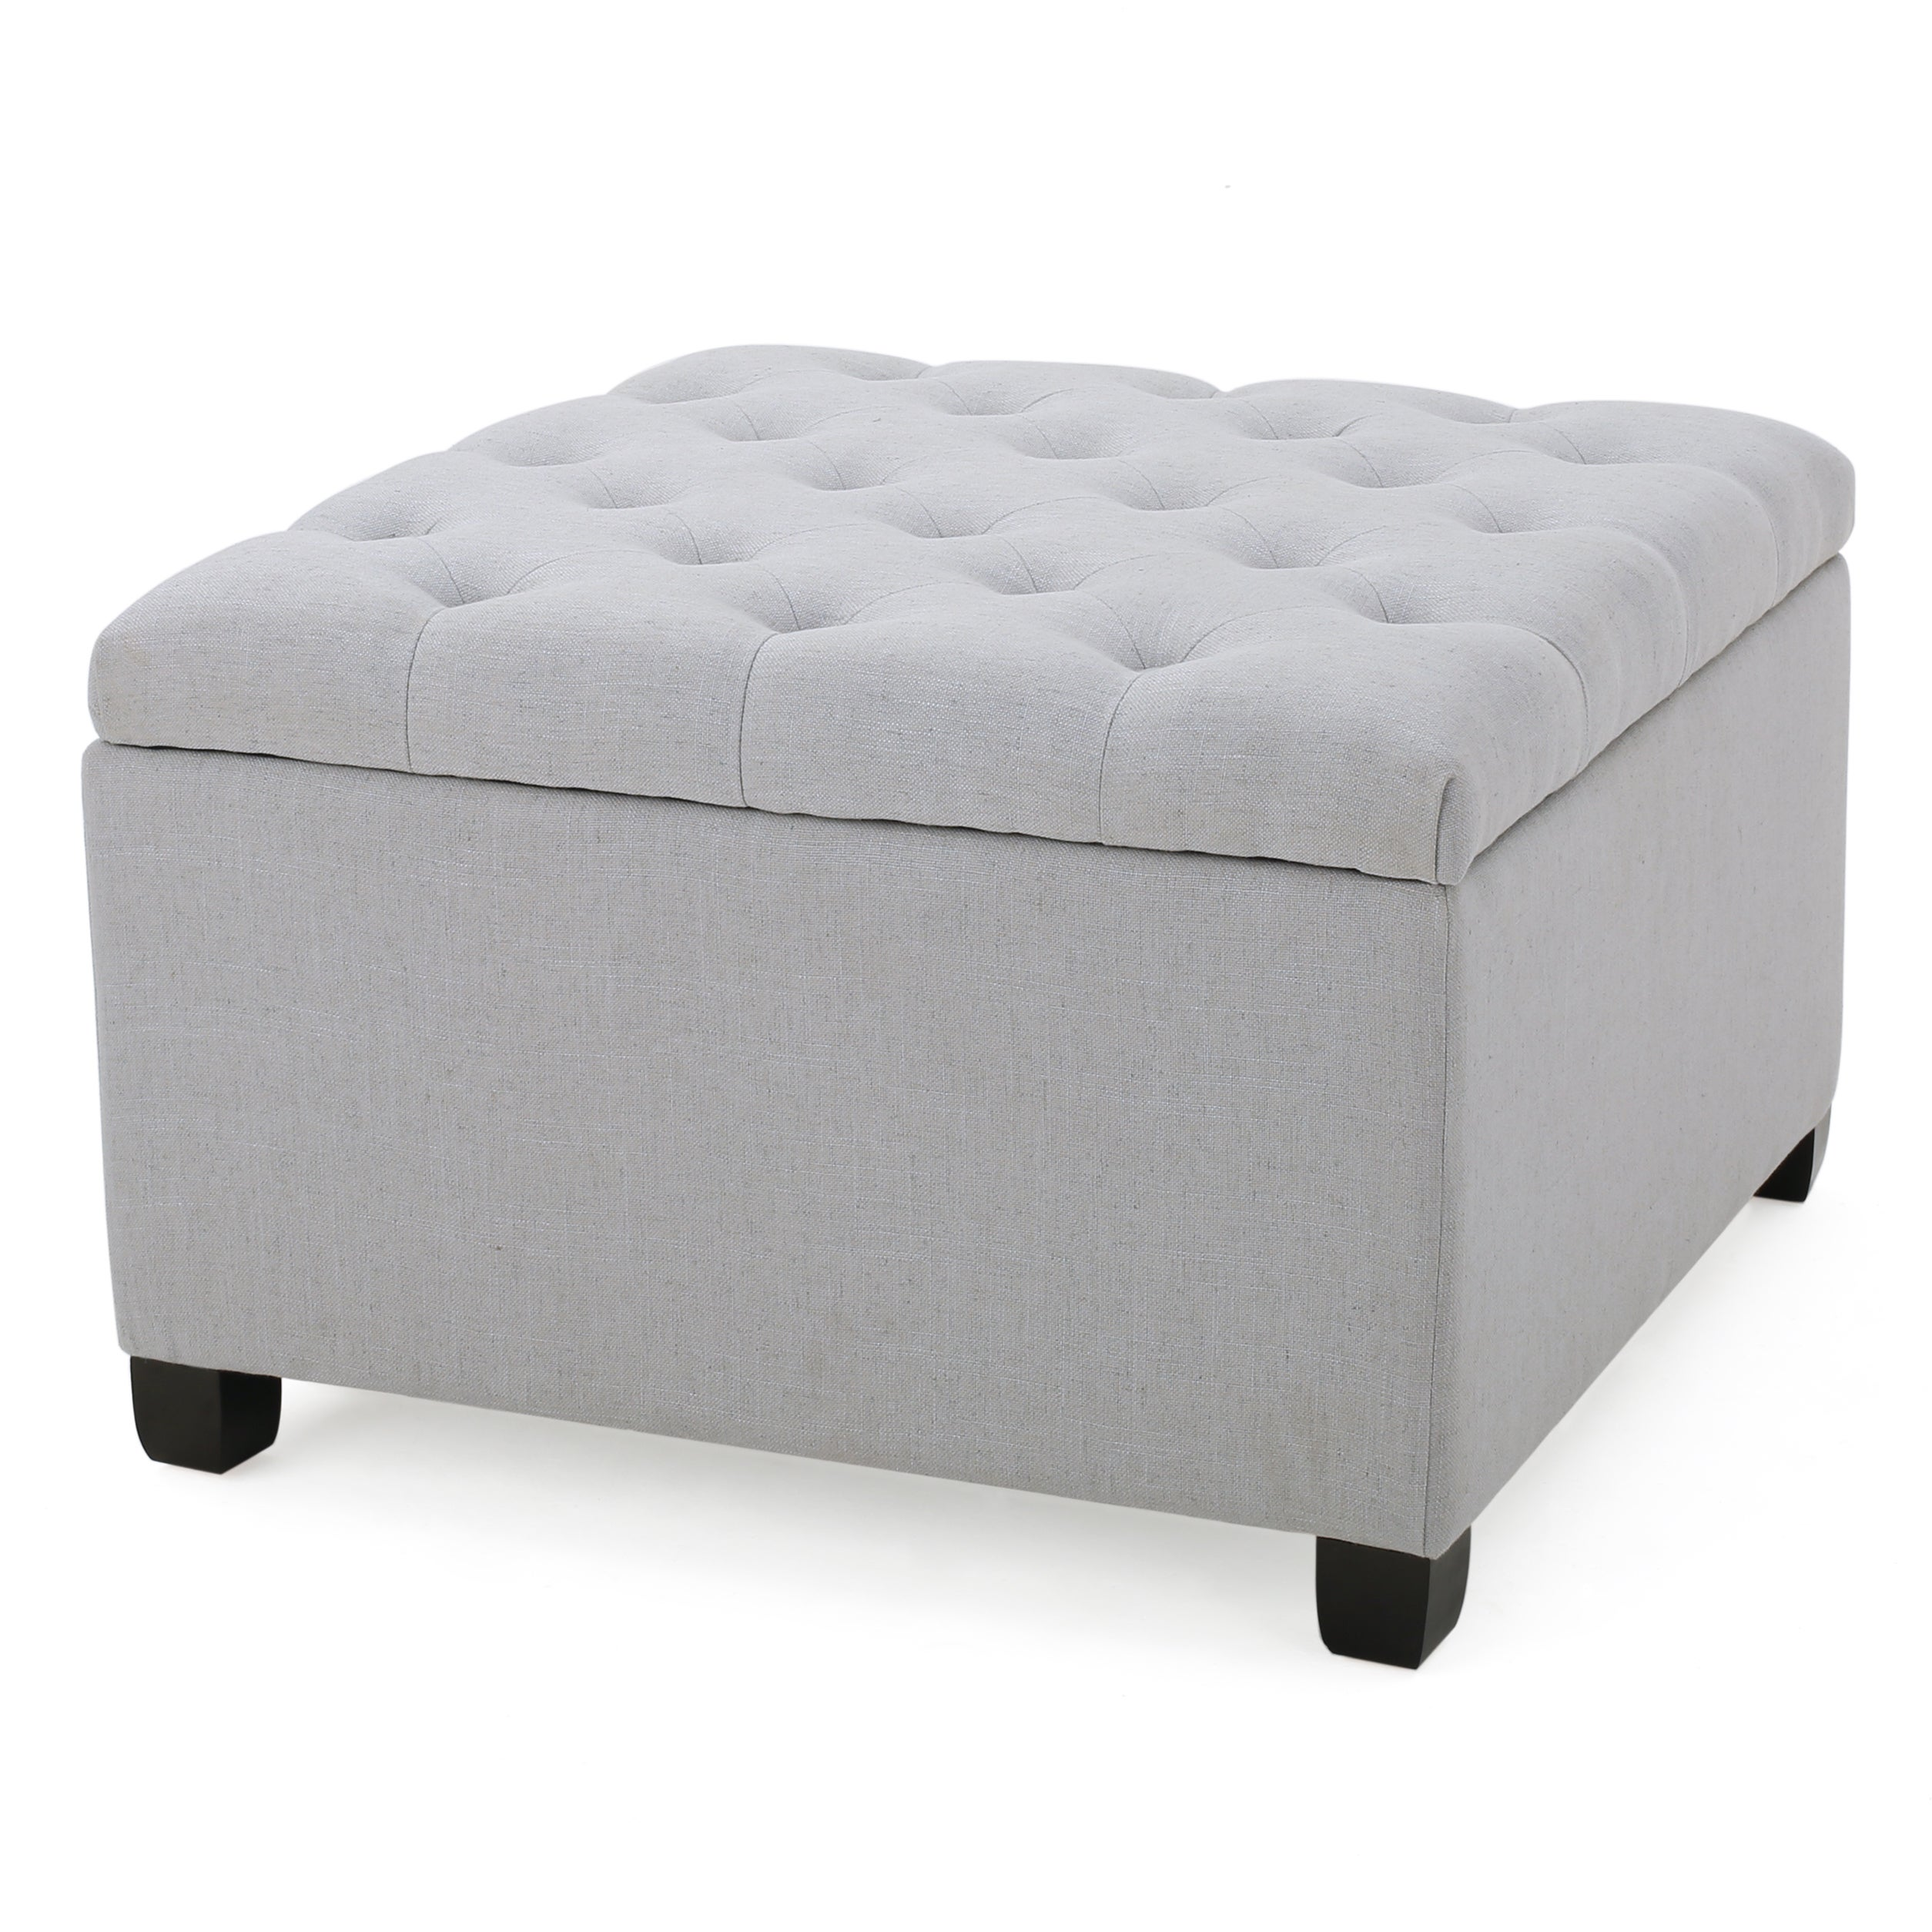 Shop Kane Tufted Button Storage Ottoman by Christopher Knight Home - Free Shipping Today - Overstock.com - 12882214  sc 1 st  Overstock.com : tufted storage ottoman  - Aquiesqueretaro.Com